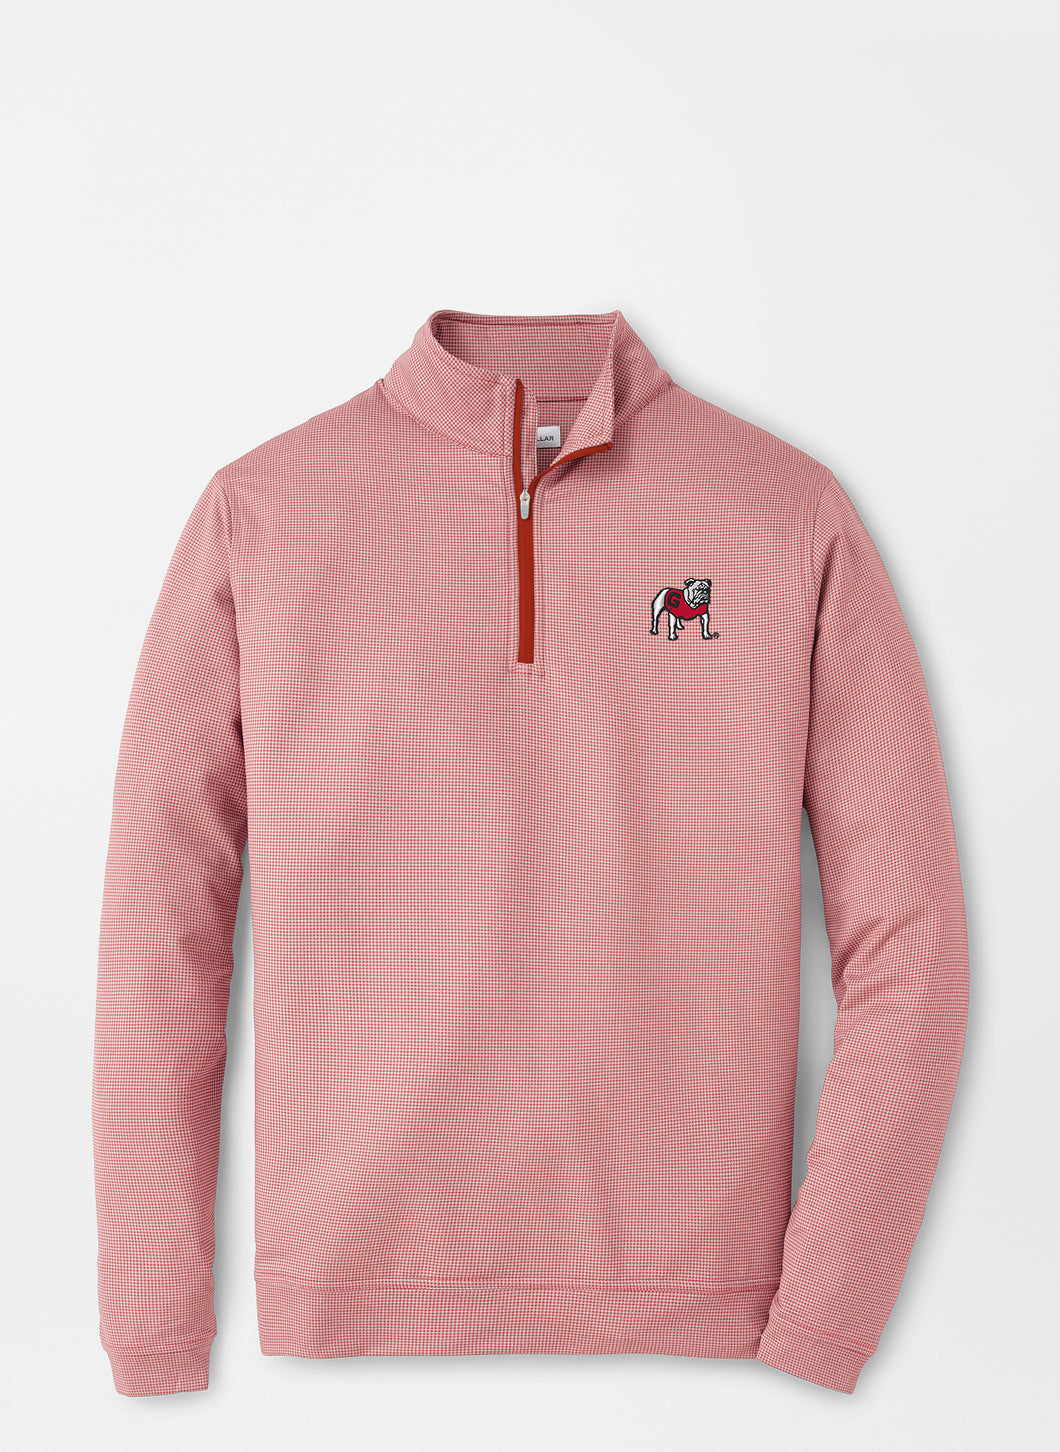 Peter Millar Georgia Standing Bulldog Houndstooth Perth Performance Pullover-Red3/Gale Grey